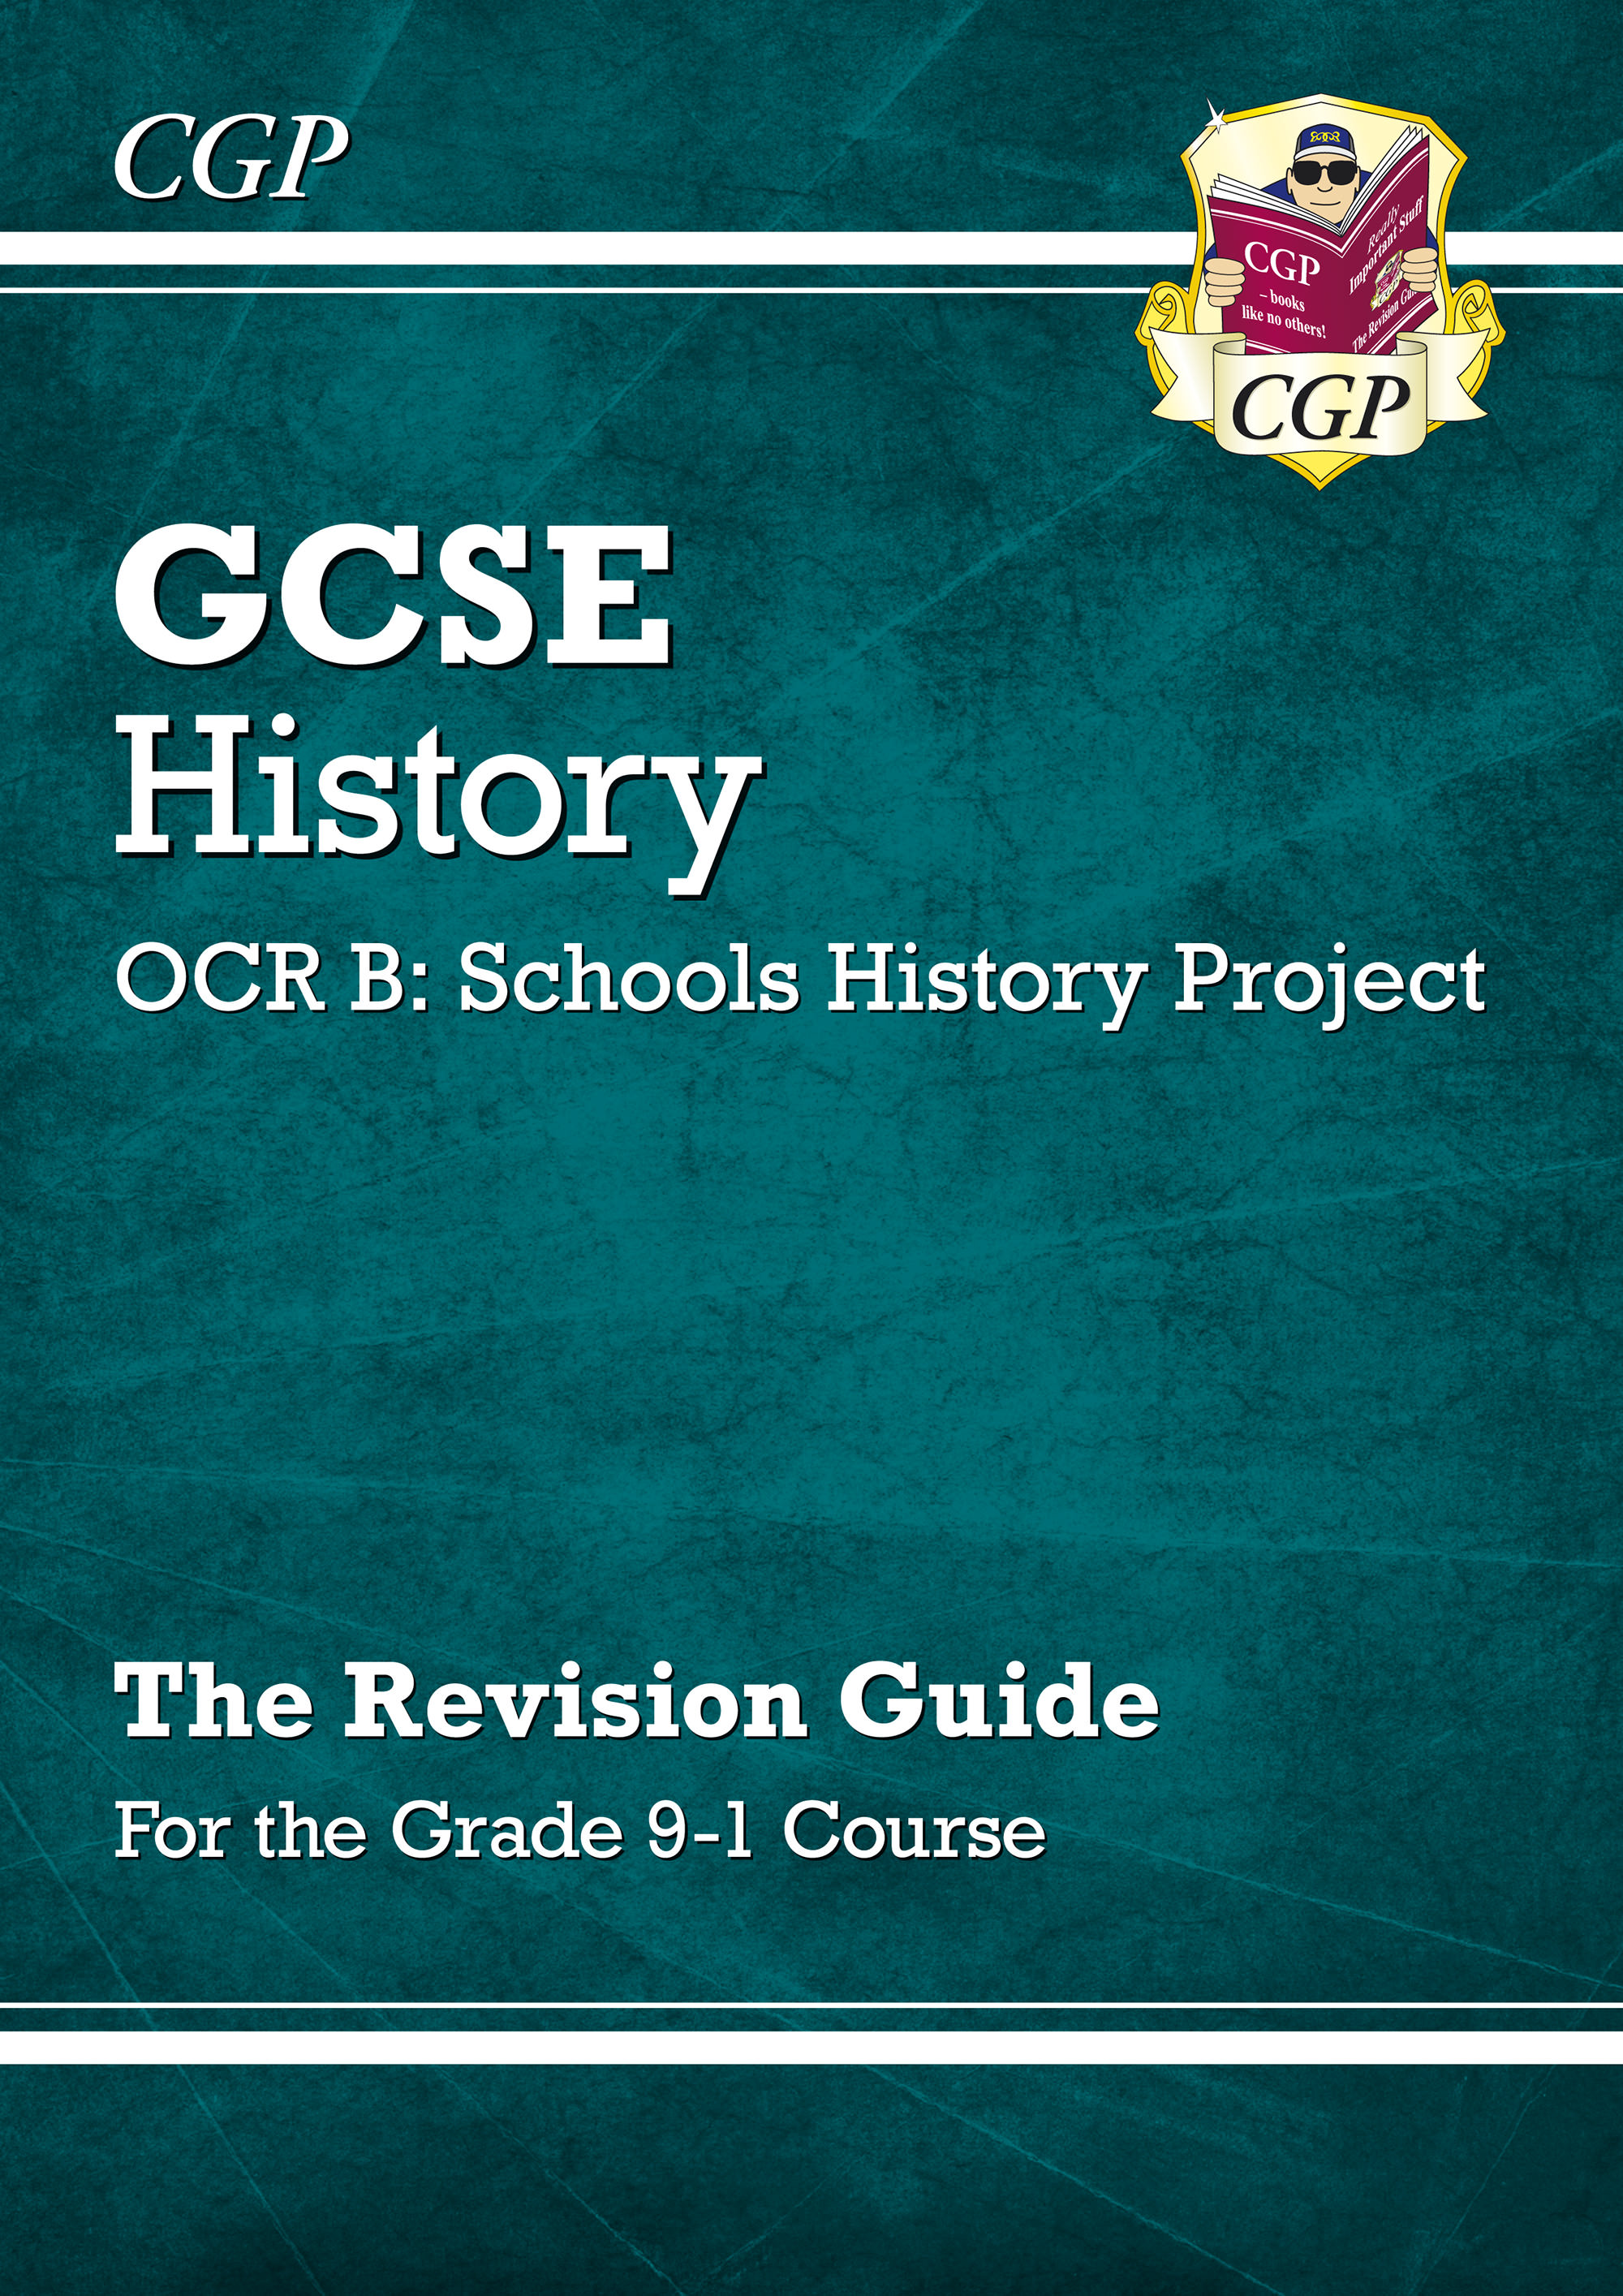 HPRR41 - New GCSE History OCR B: Schools History Project Revision Guide - for the Grade 9-1 Course